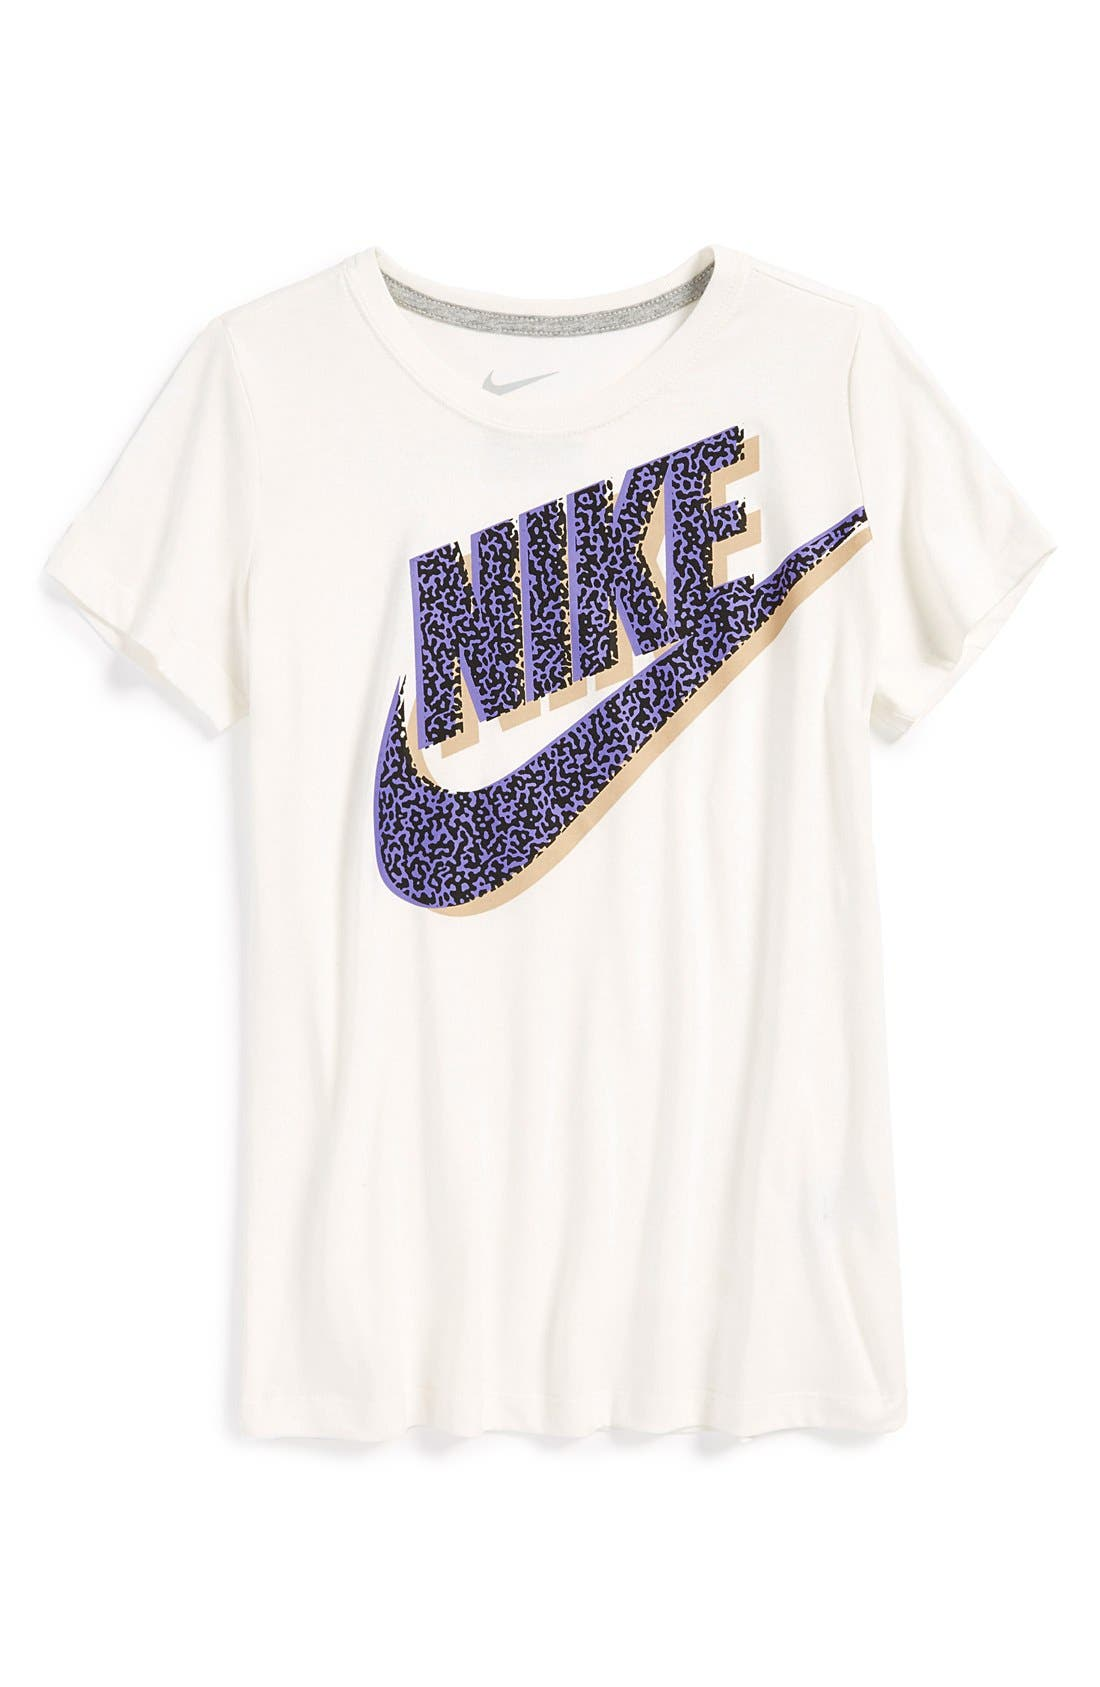 Alternate Image 1 Selected - Nike 'Run Heritage' Graphic Tee (Big Girls) (Online Only)